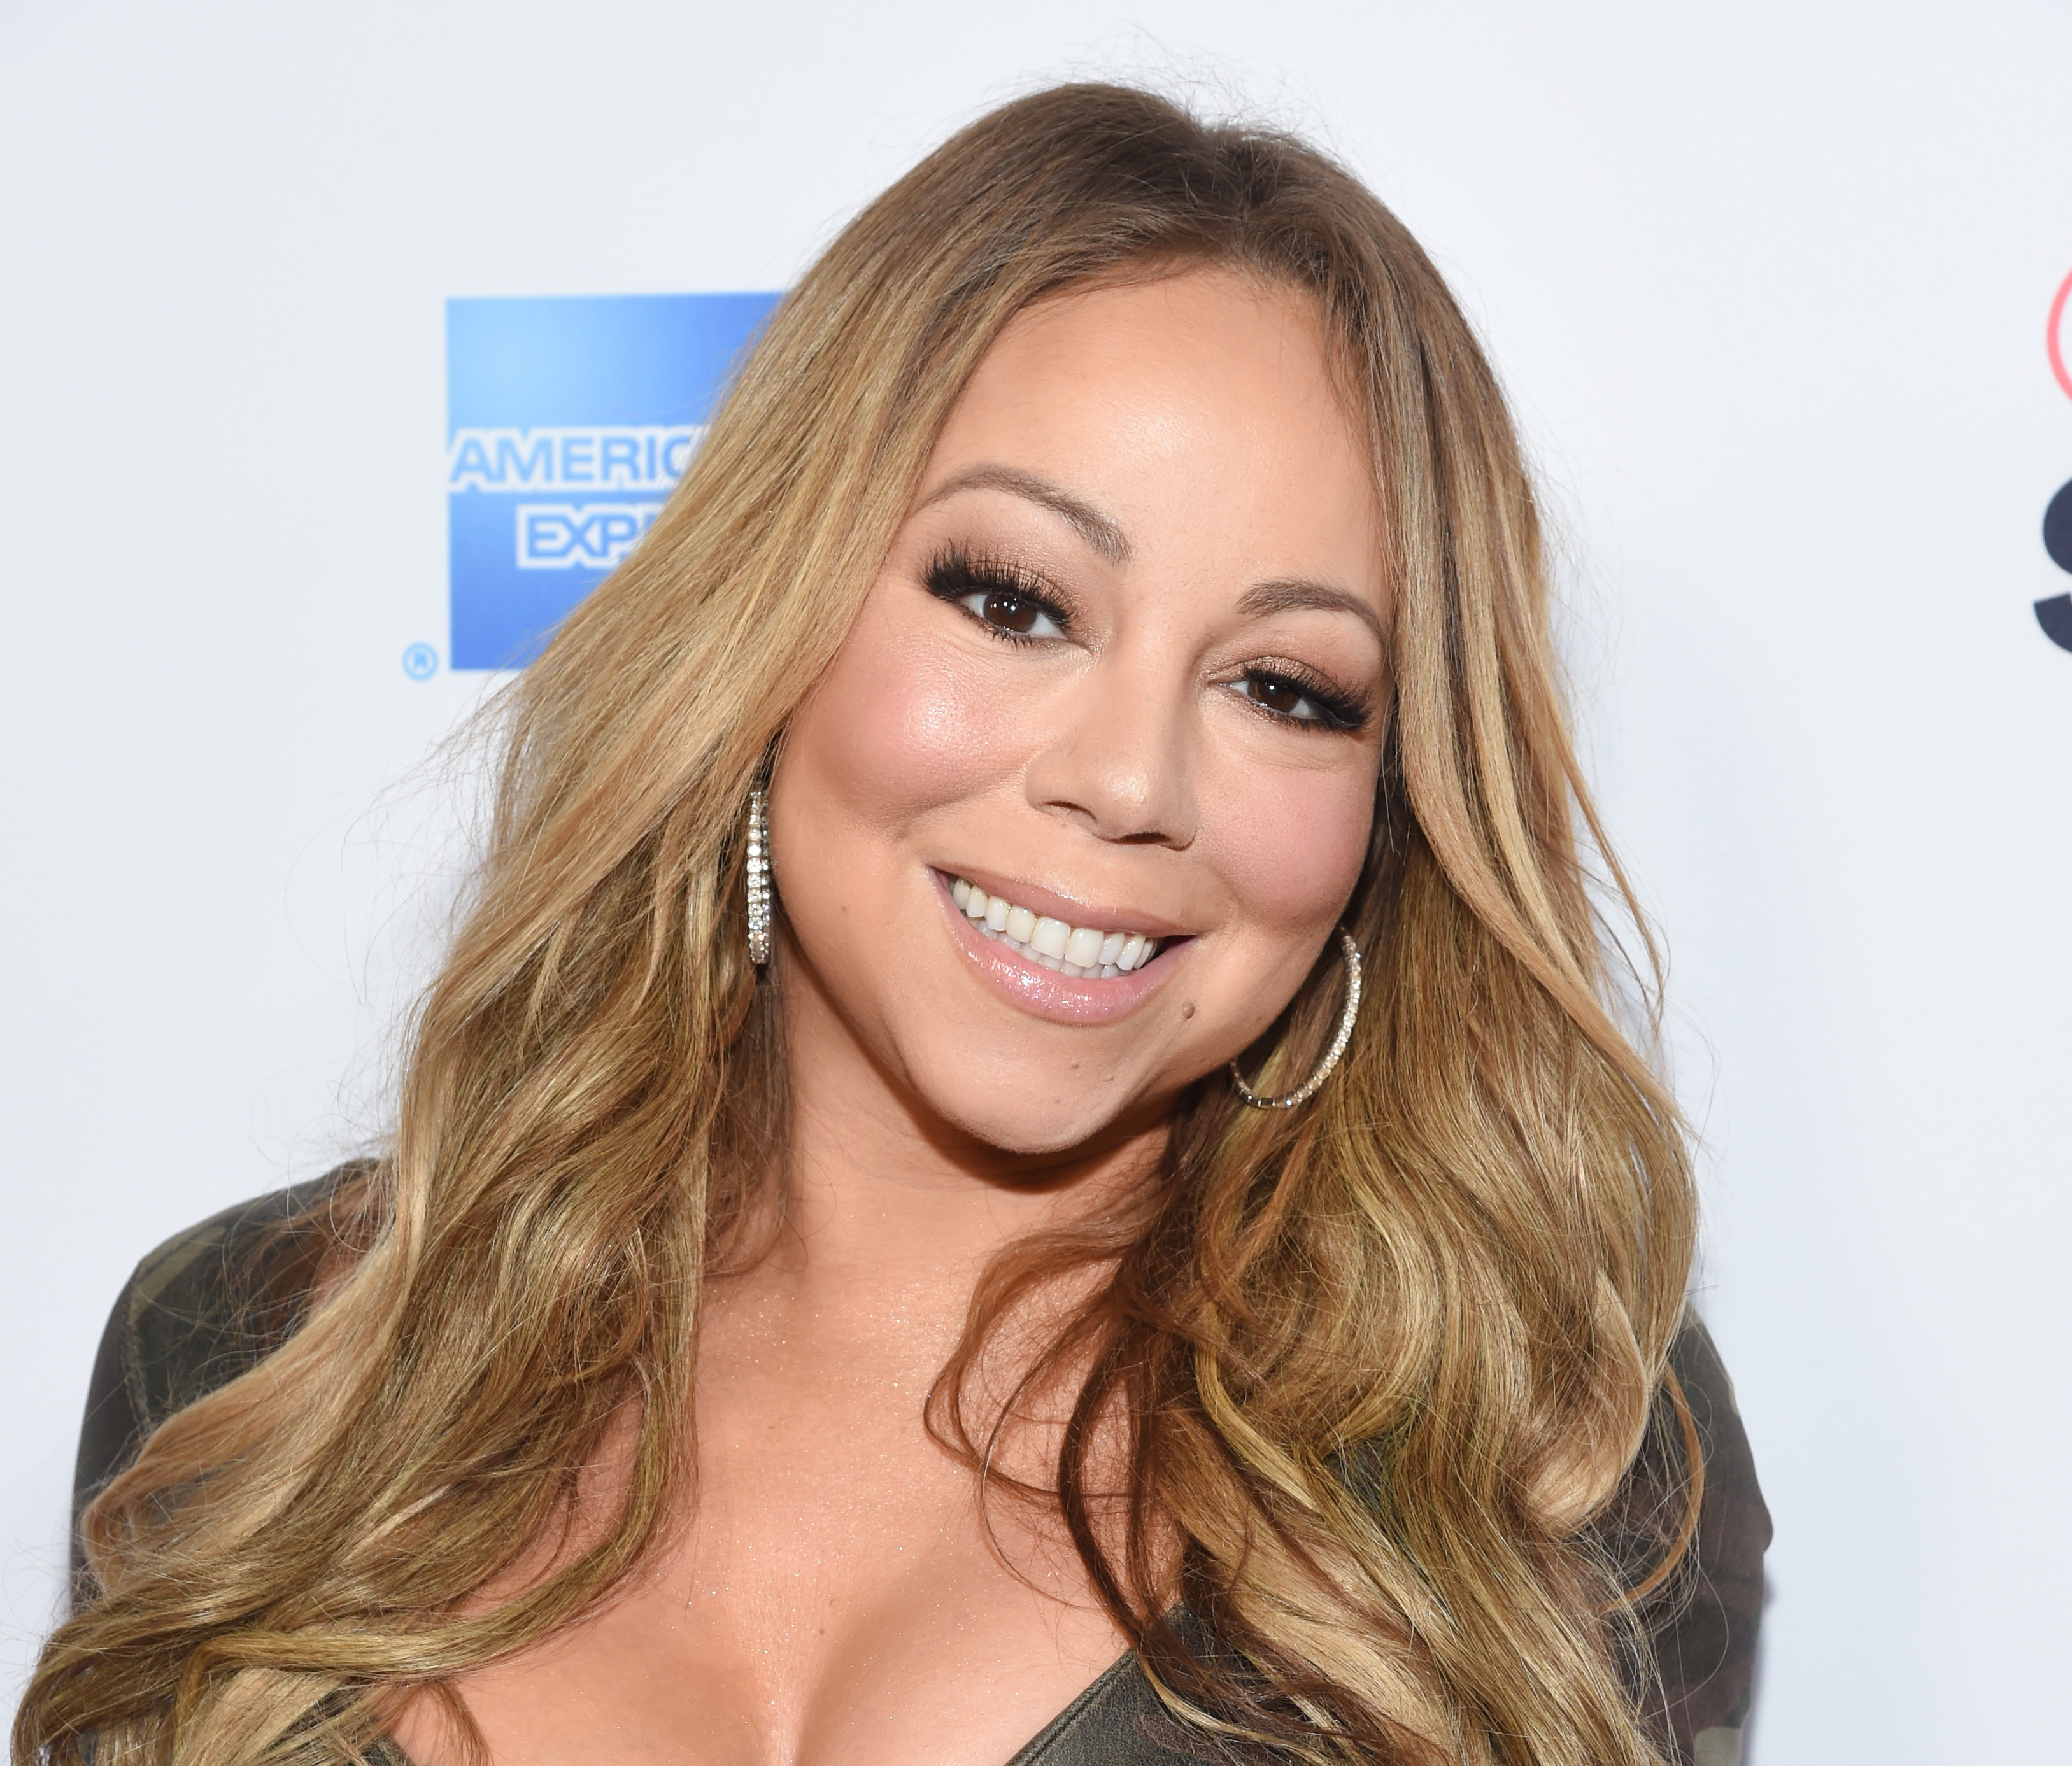 mount carey latin dating site Mariah carey on wilson & alroy's  pop, jazz, funk, punk, hip hop, latin - plus concerts  remix singles in the 90s, carey paid a lot of attention to.